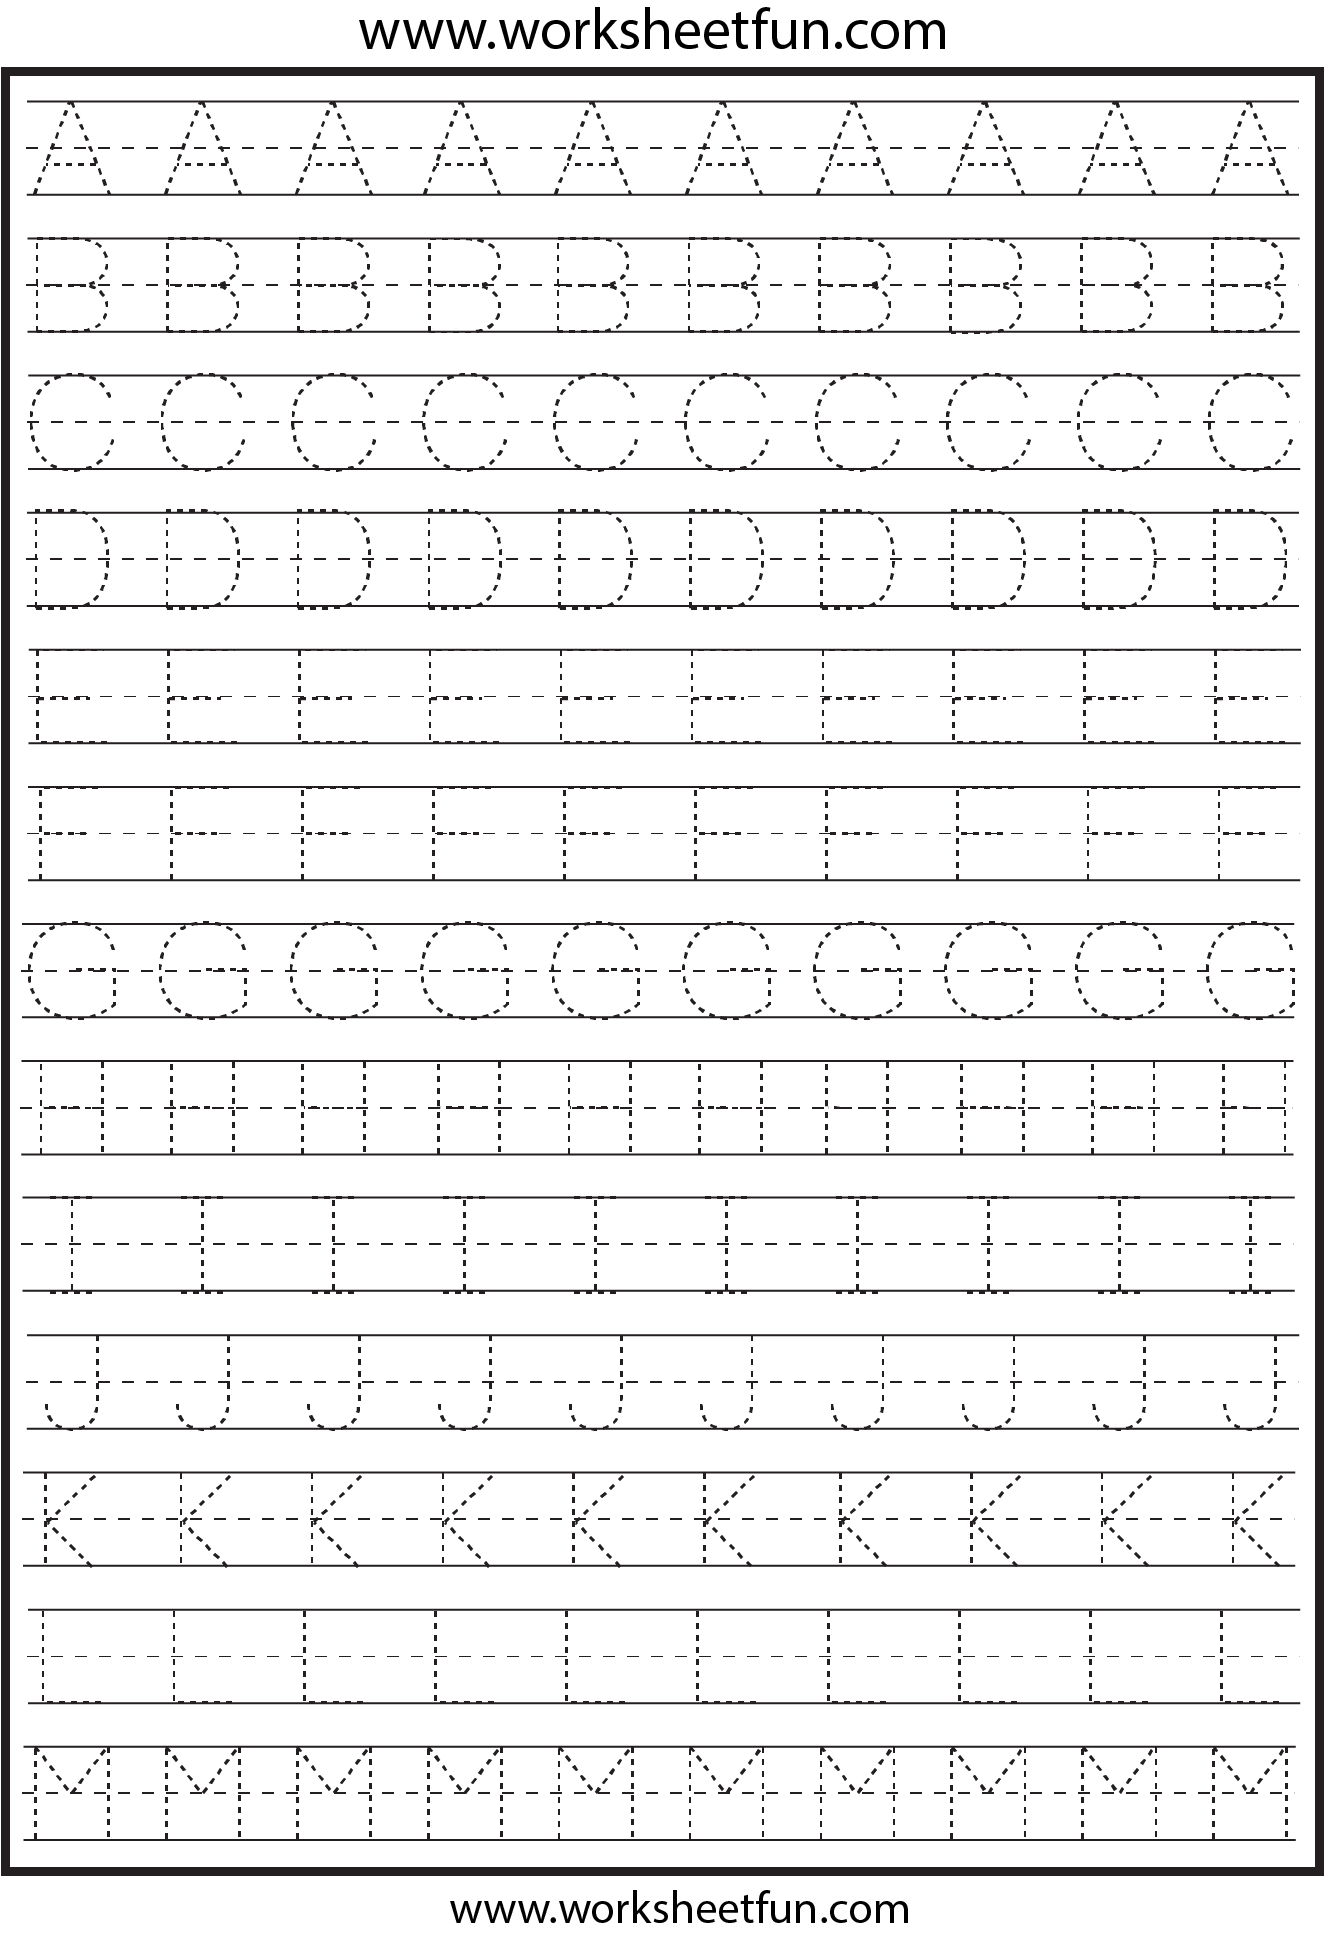 Worksheet Letter Tracing Worksheets letter tracing worksheets yelstk letters for kindergarten reocurent